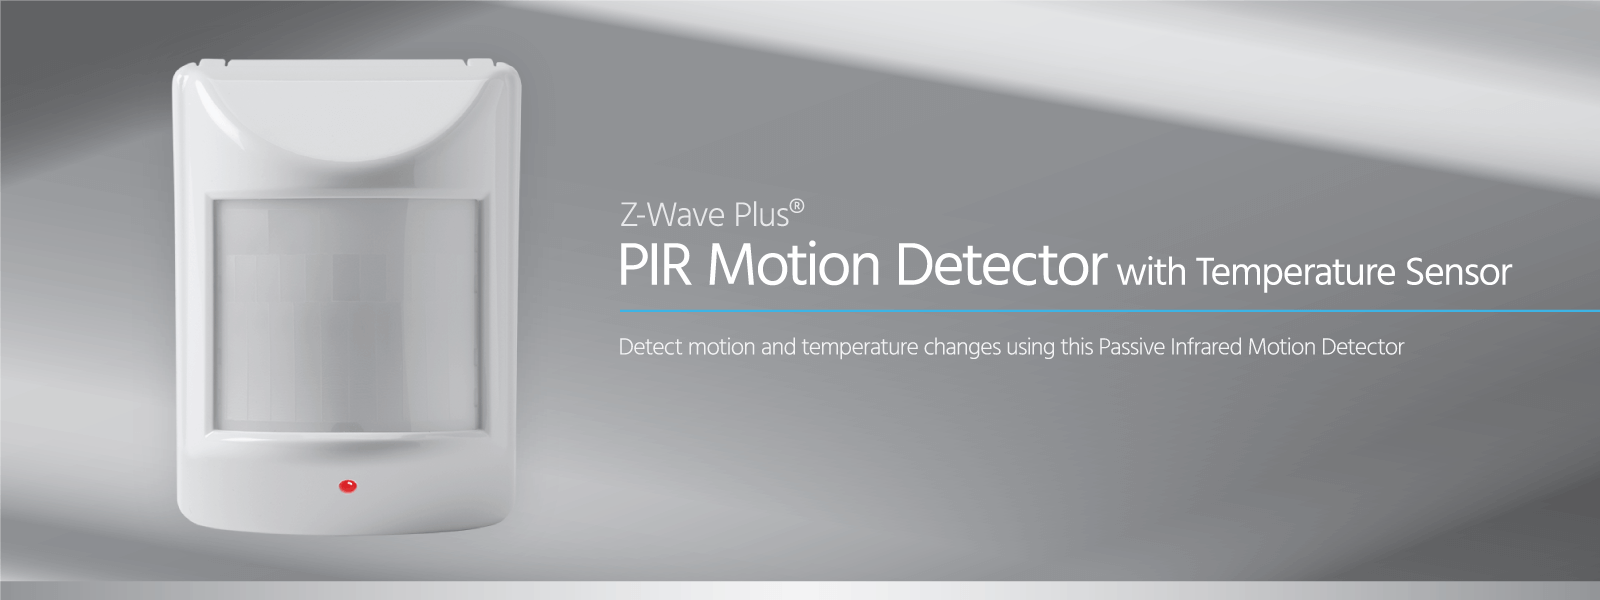 Z-Wave Plus PIR Motion Detector